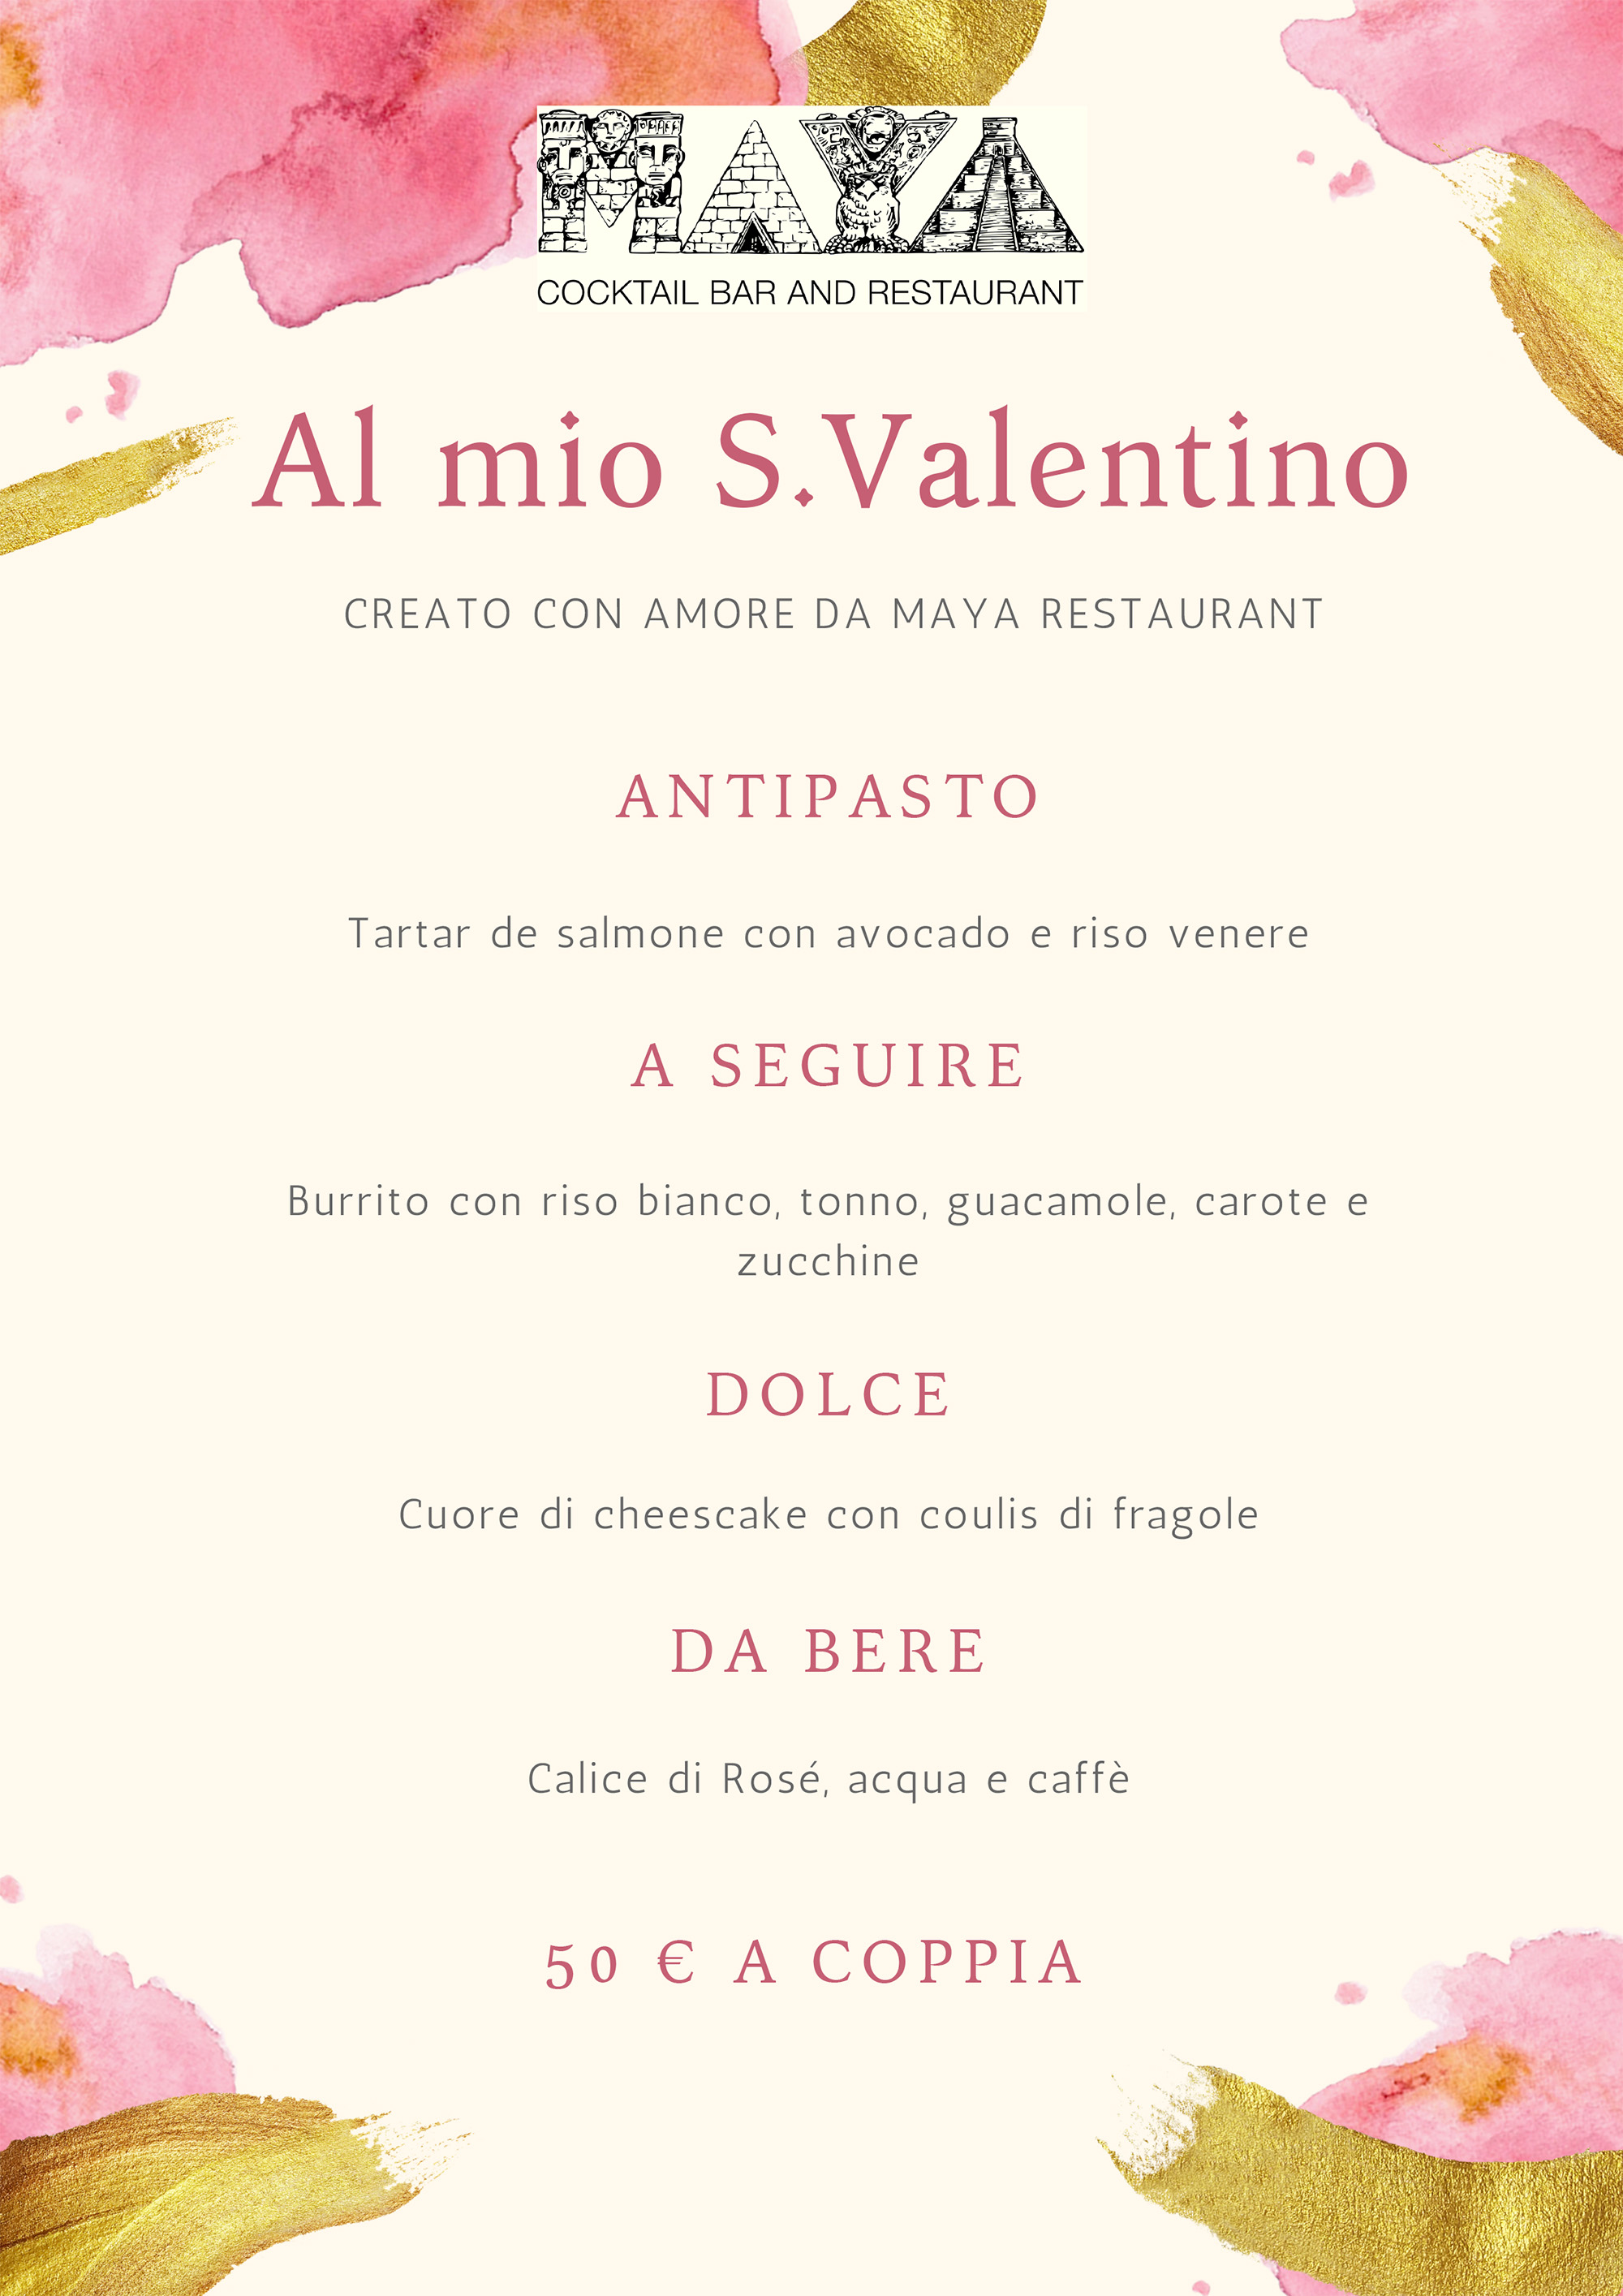 Pink and Cream Sparkly Valentine's Day Food and Drink Menu